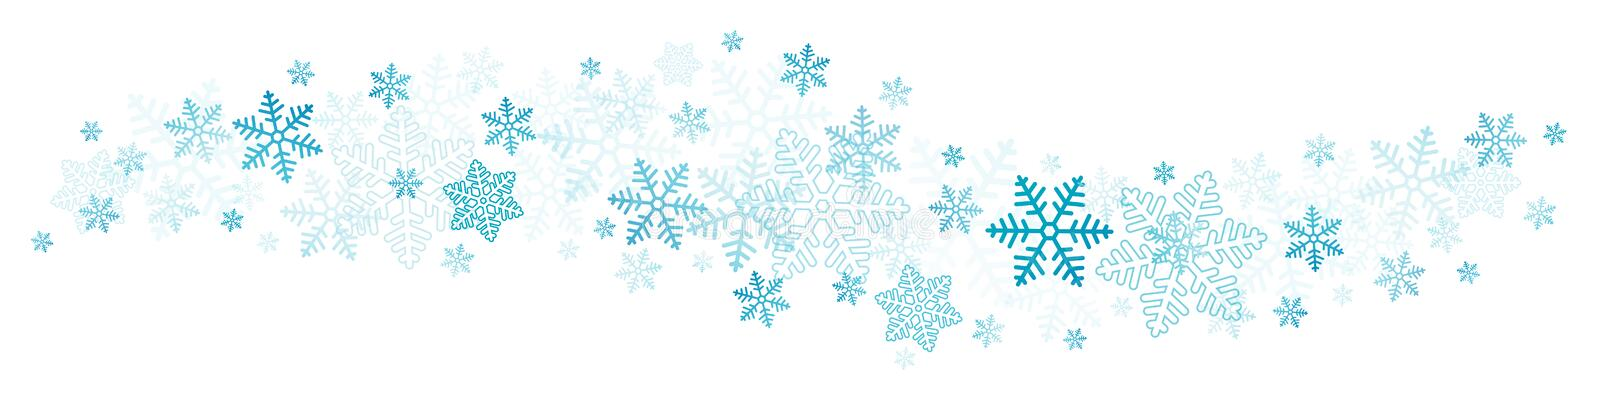 Flying Blue Snowflakes And Stars Border stock illustration